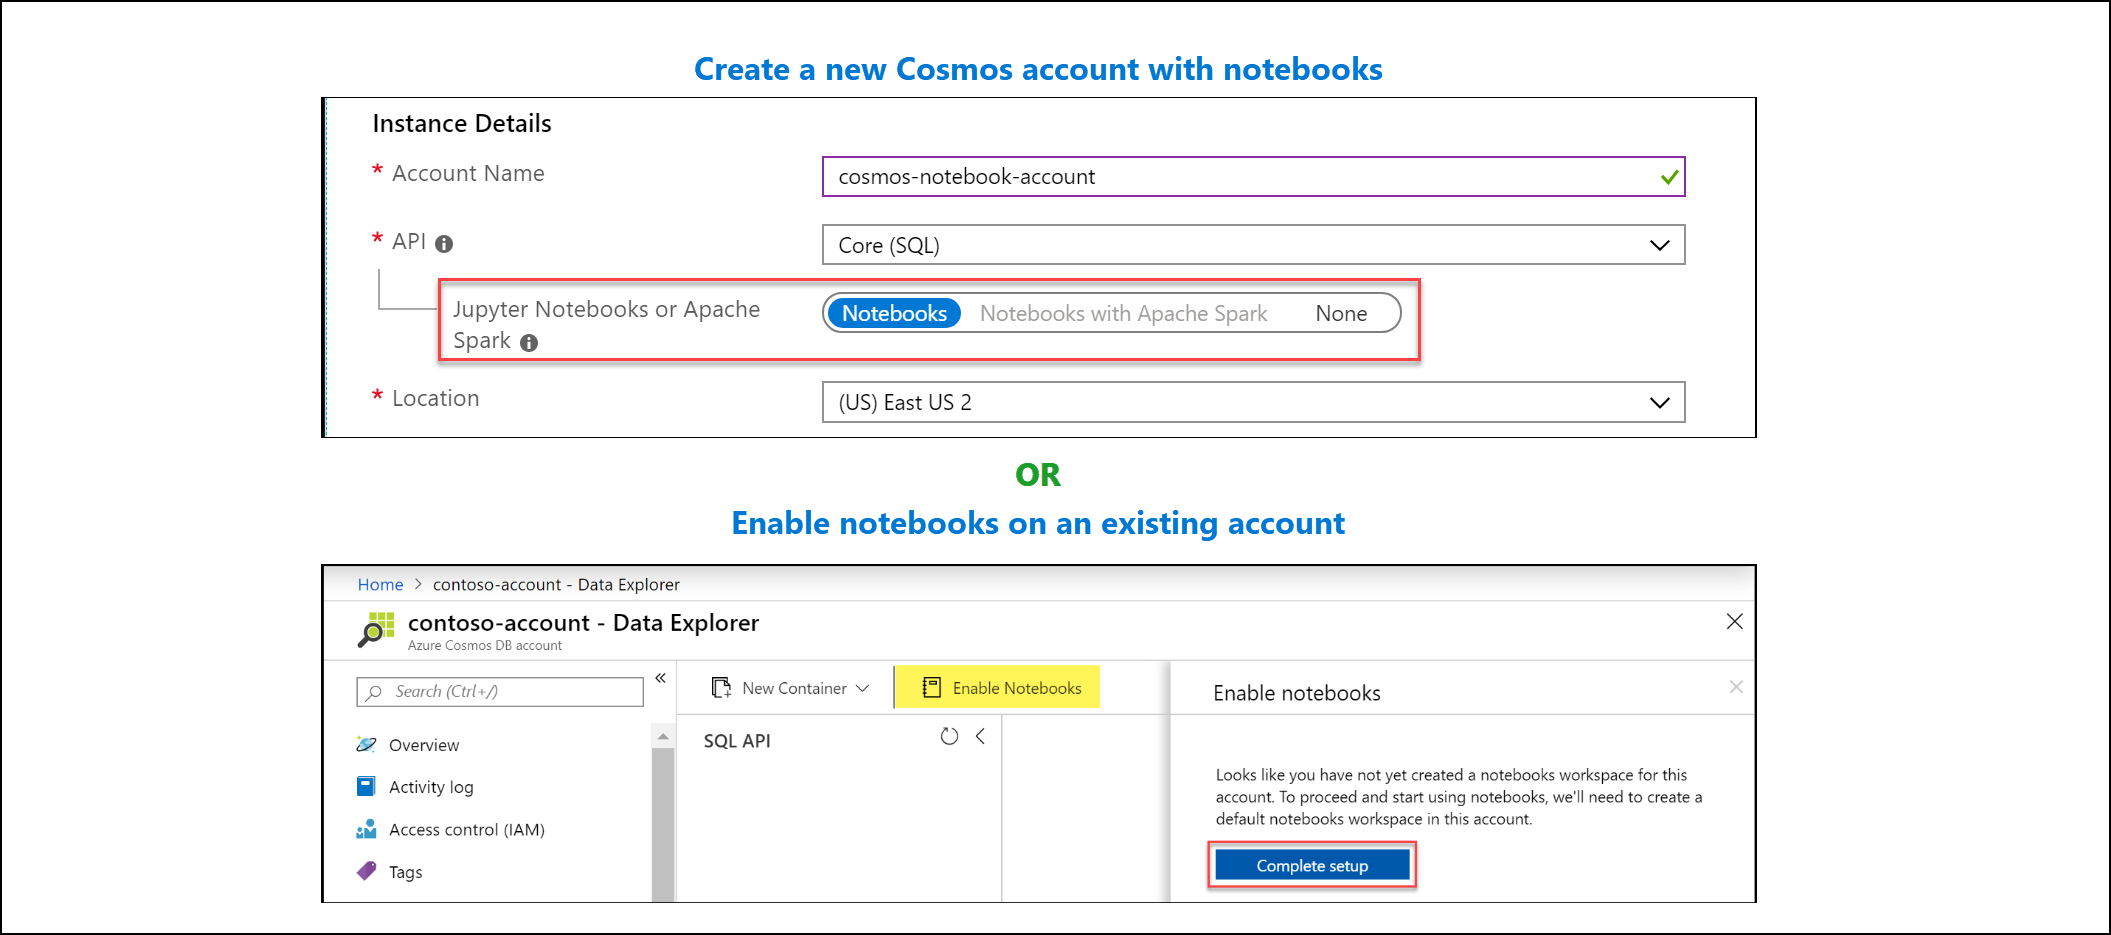 Create account with notebooks or enable notebooks on existing account in Azure portal.